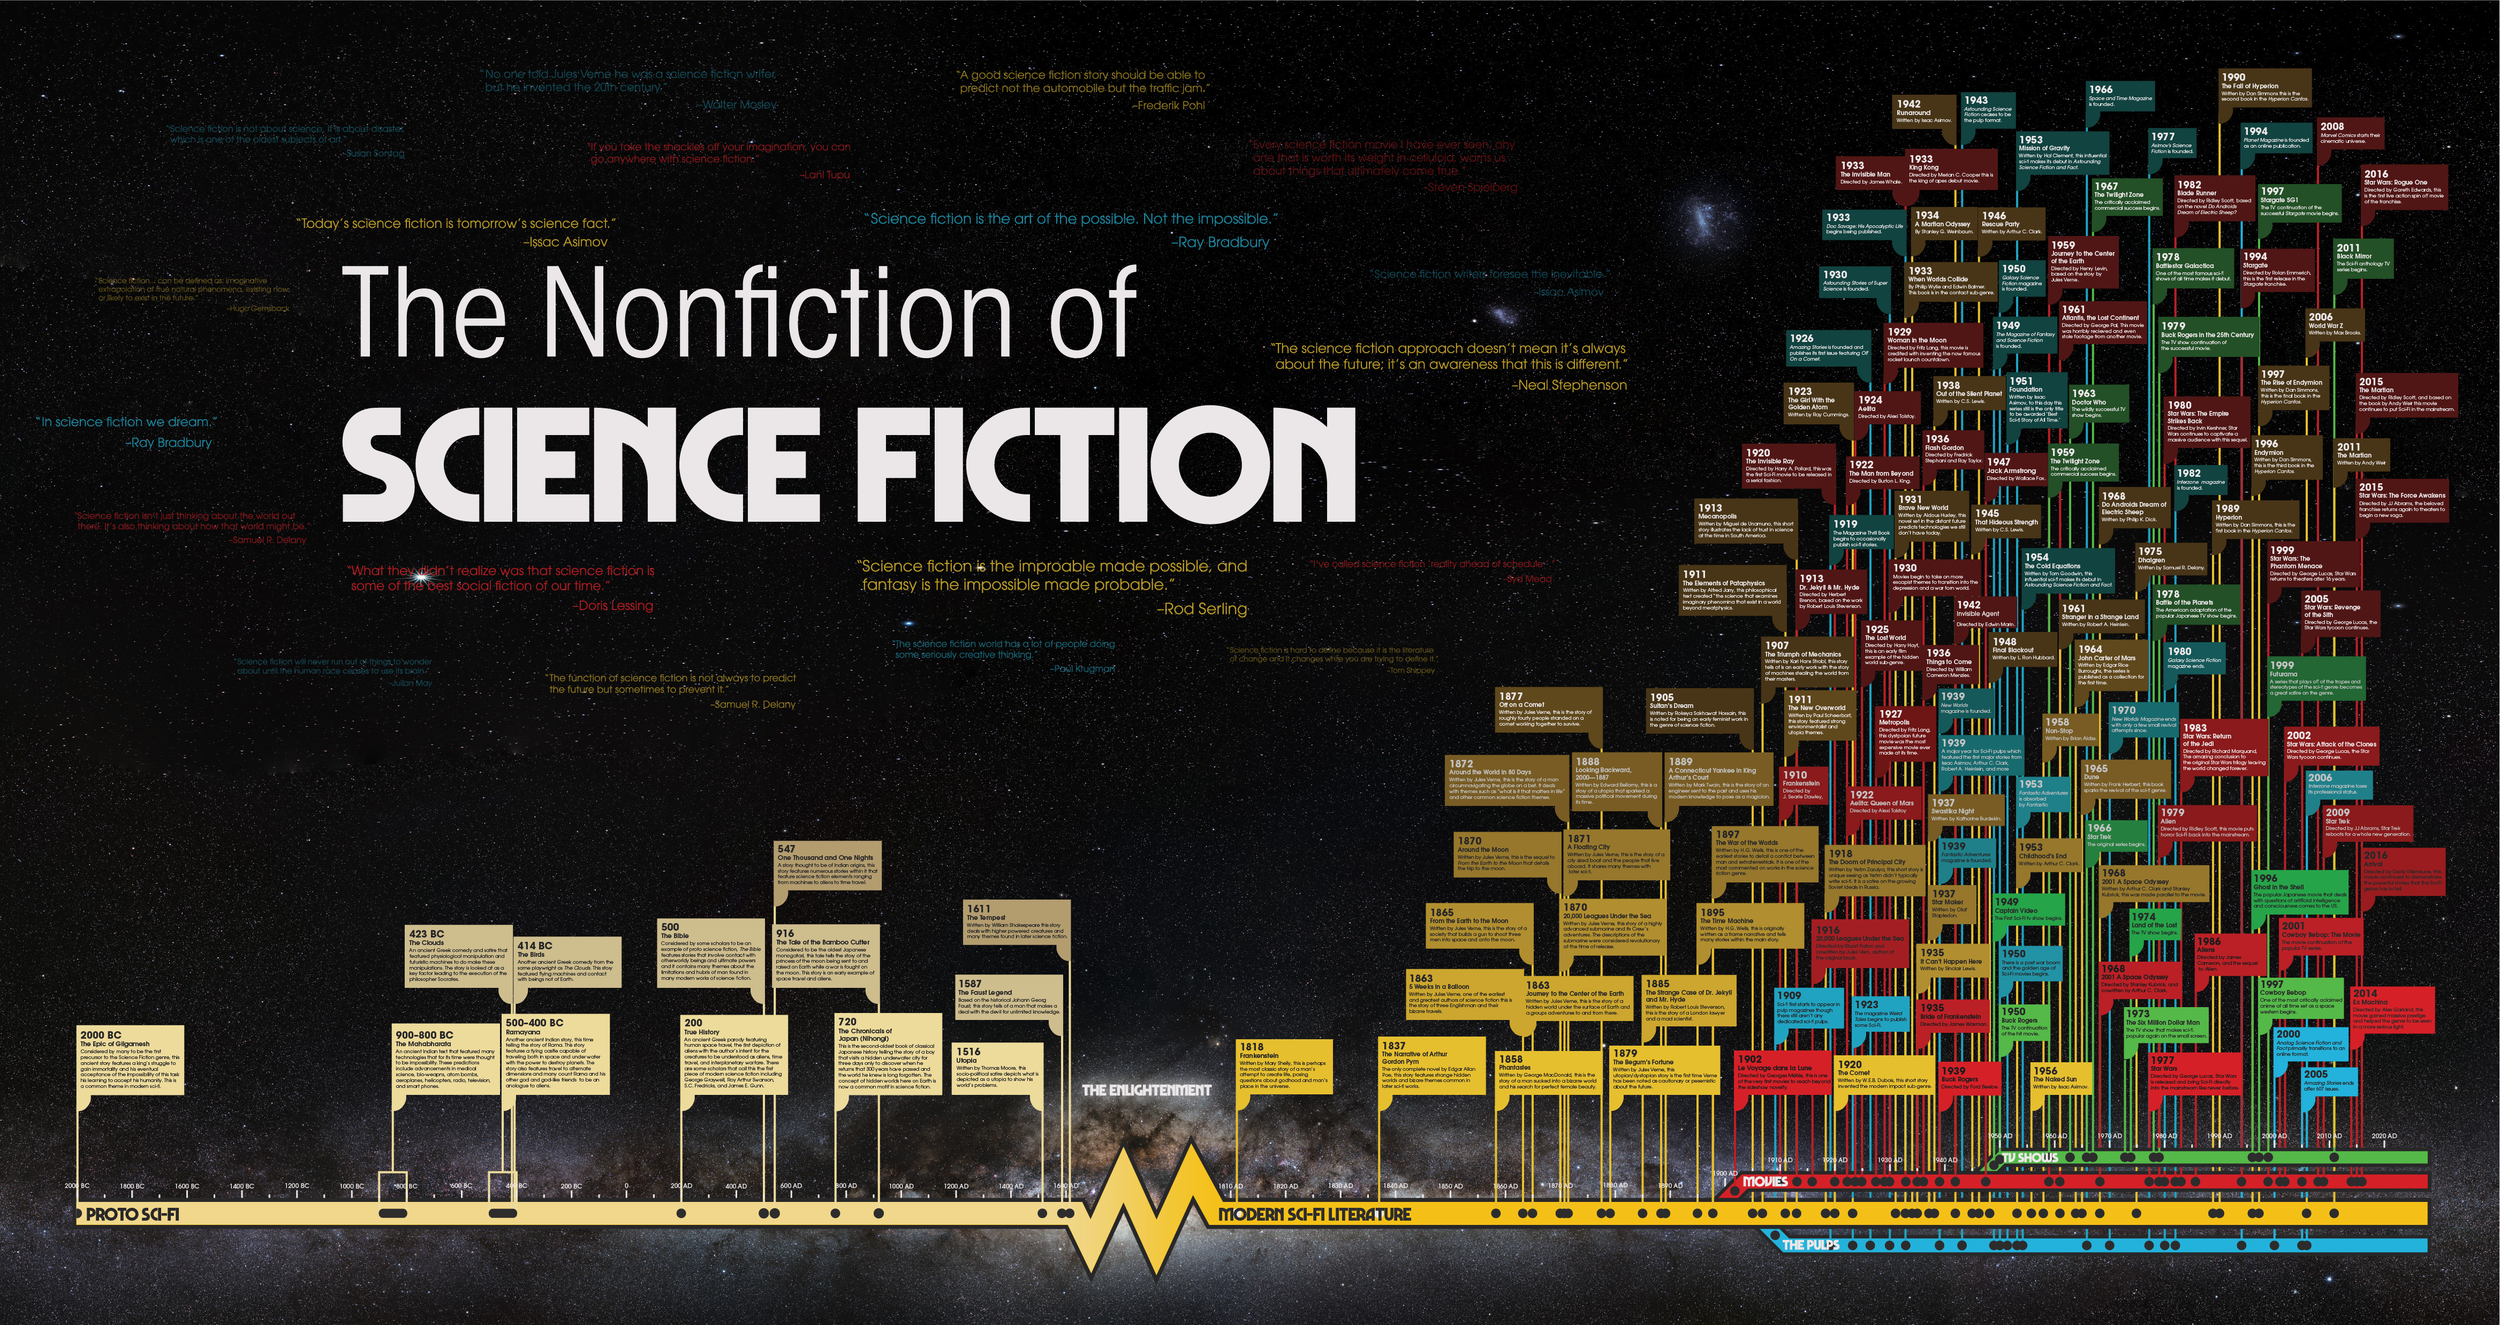 Full History of Sci-Fi Timeline